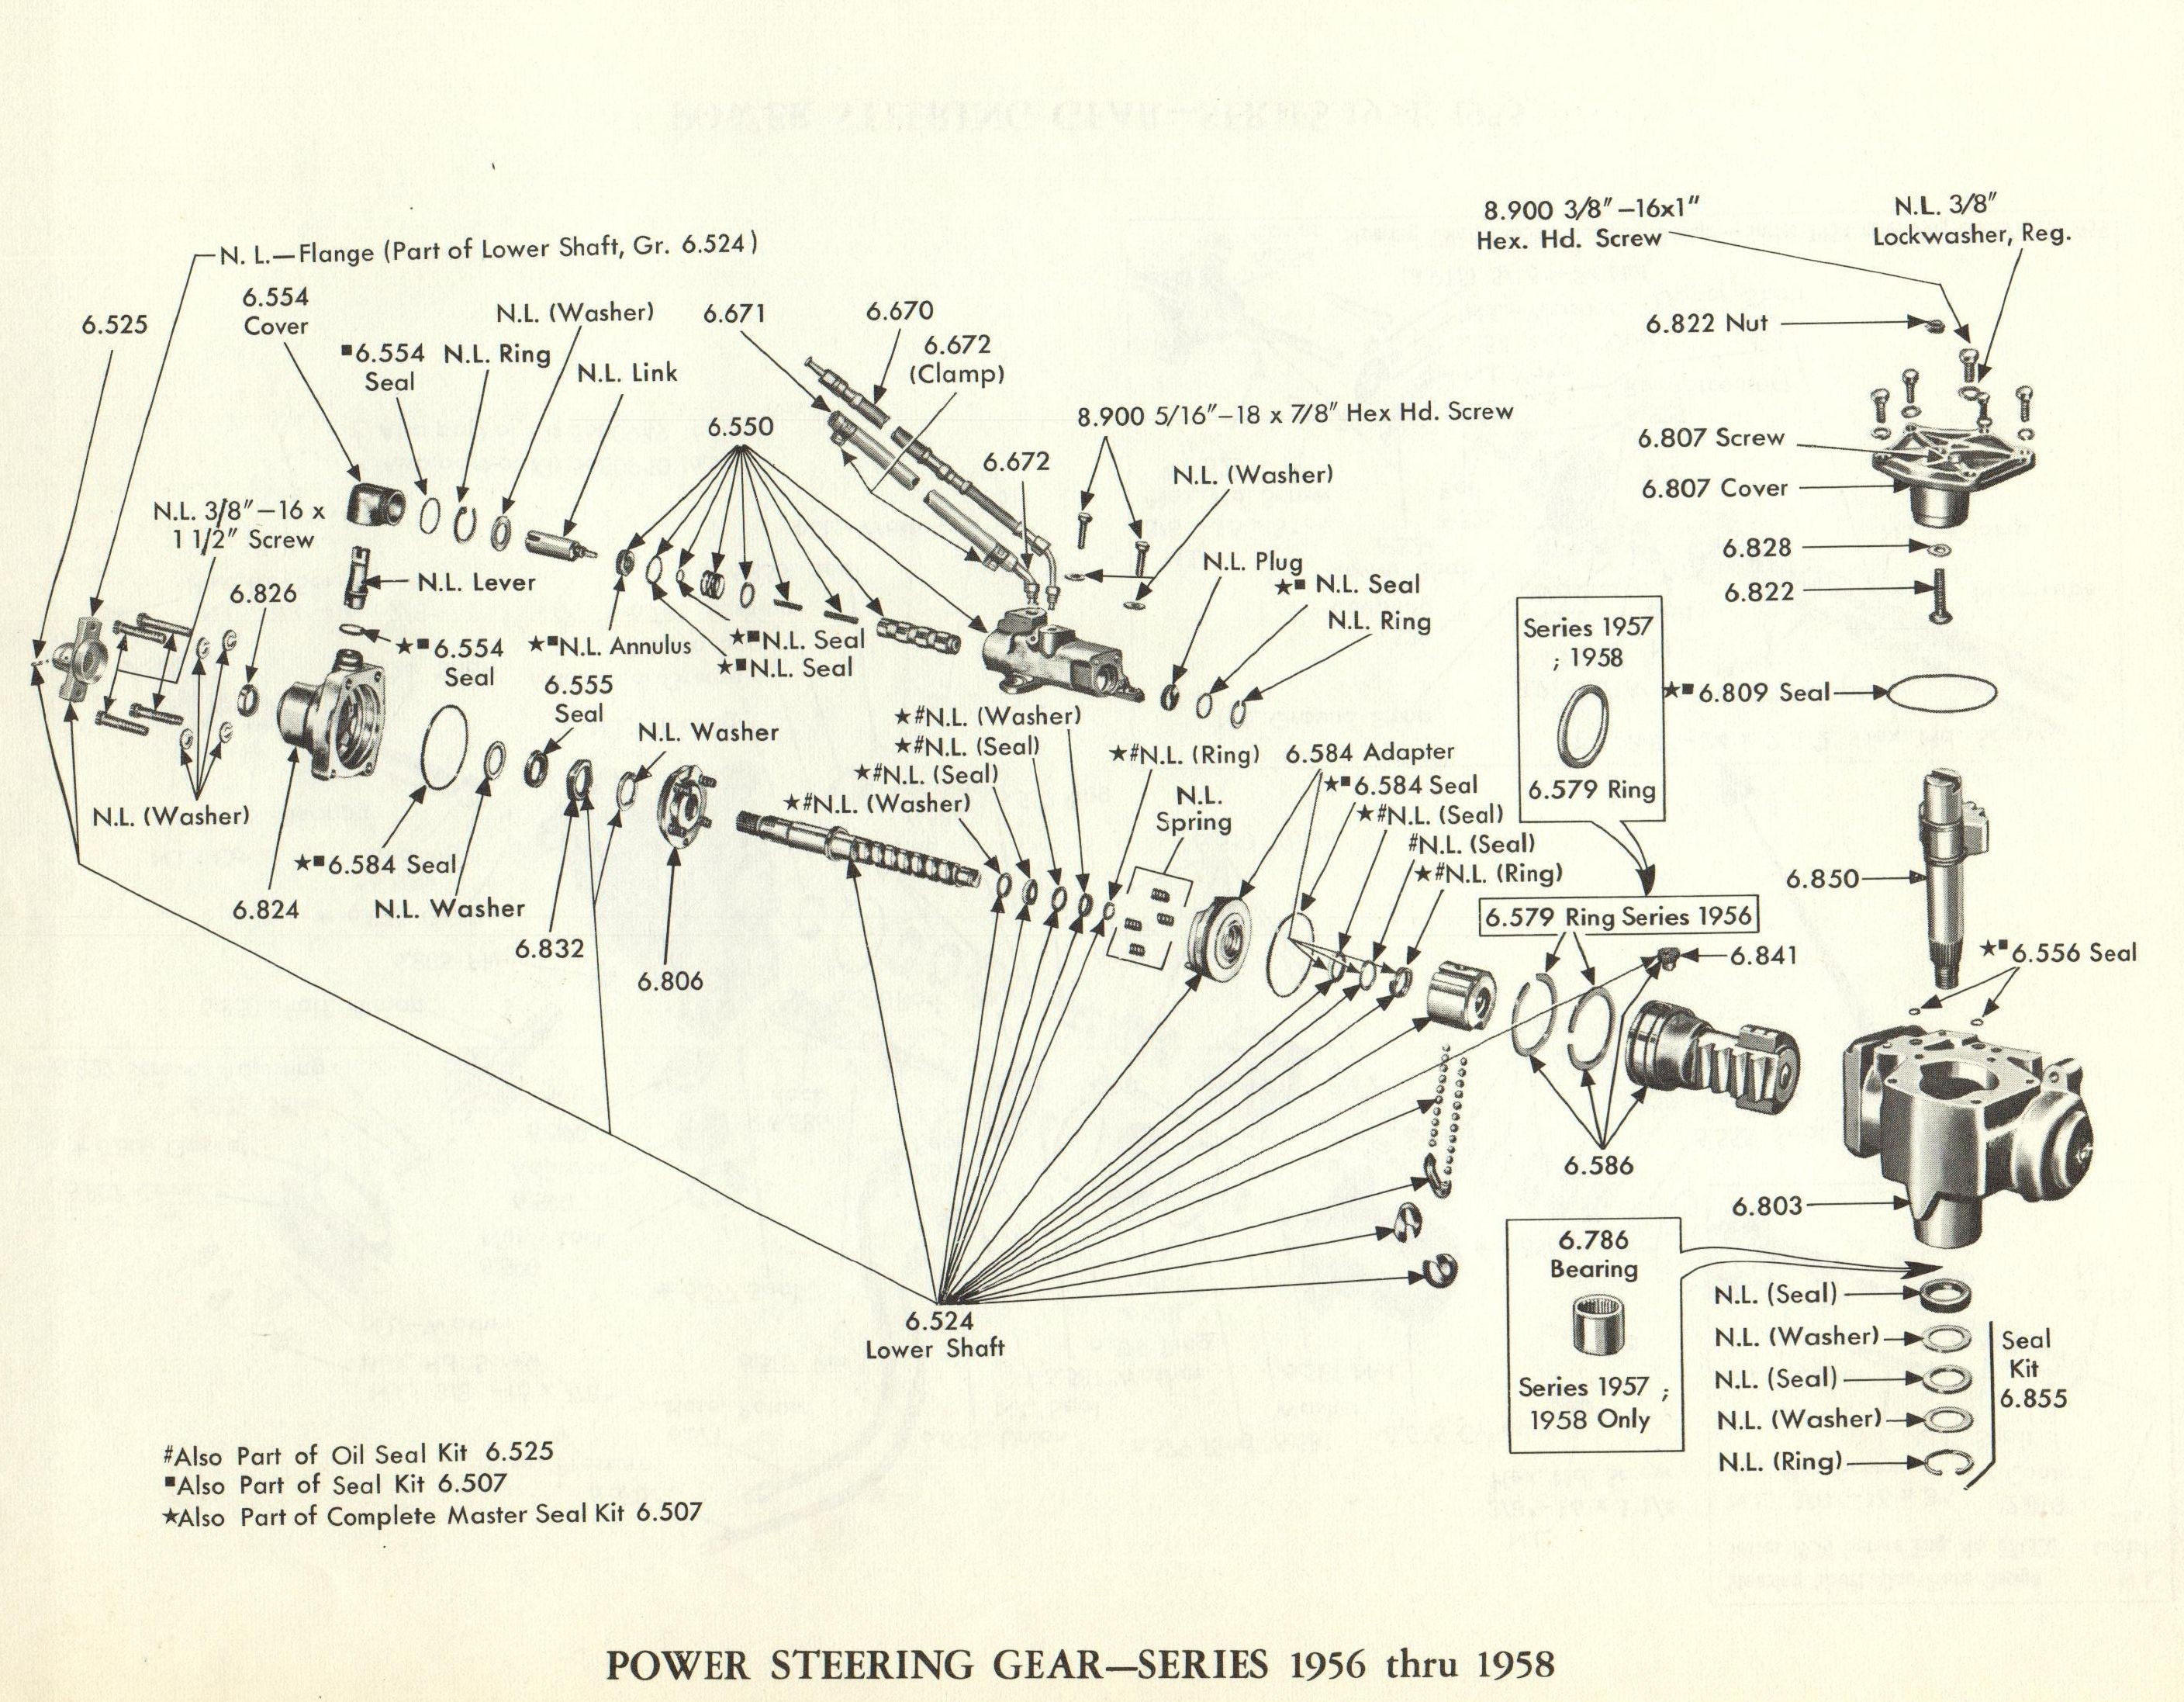 Hydraulic Steering Diagram 1956 1957 1958 Cadillac Power Steering Gear Cadillac Parts Line Of Hydraulic Steering Diagram